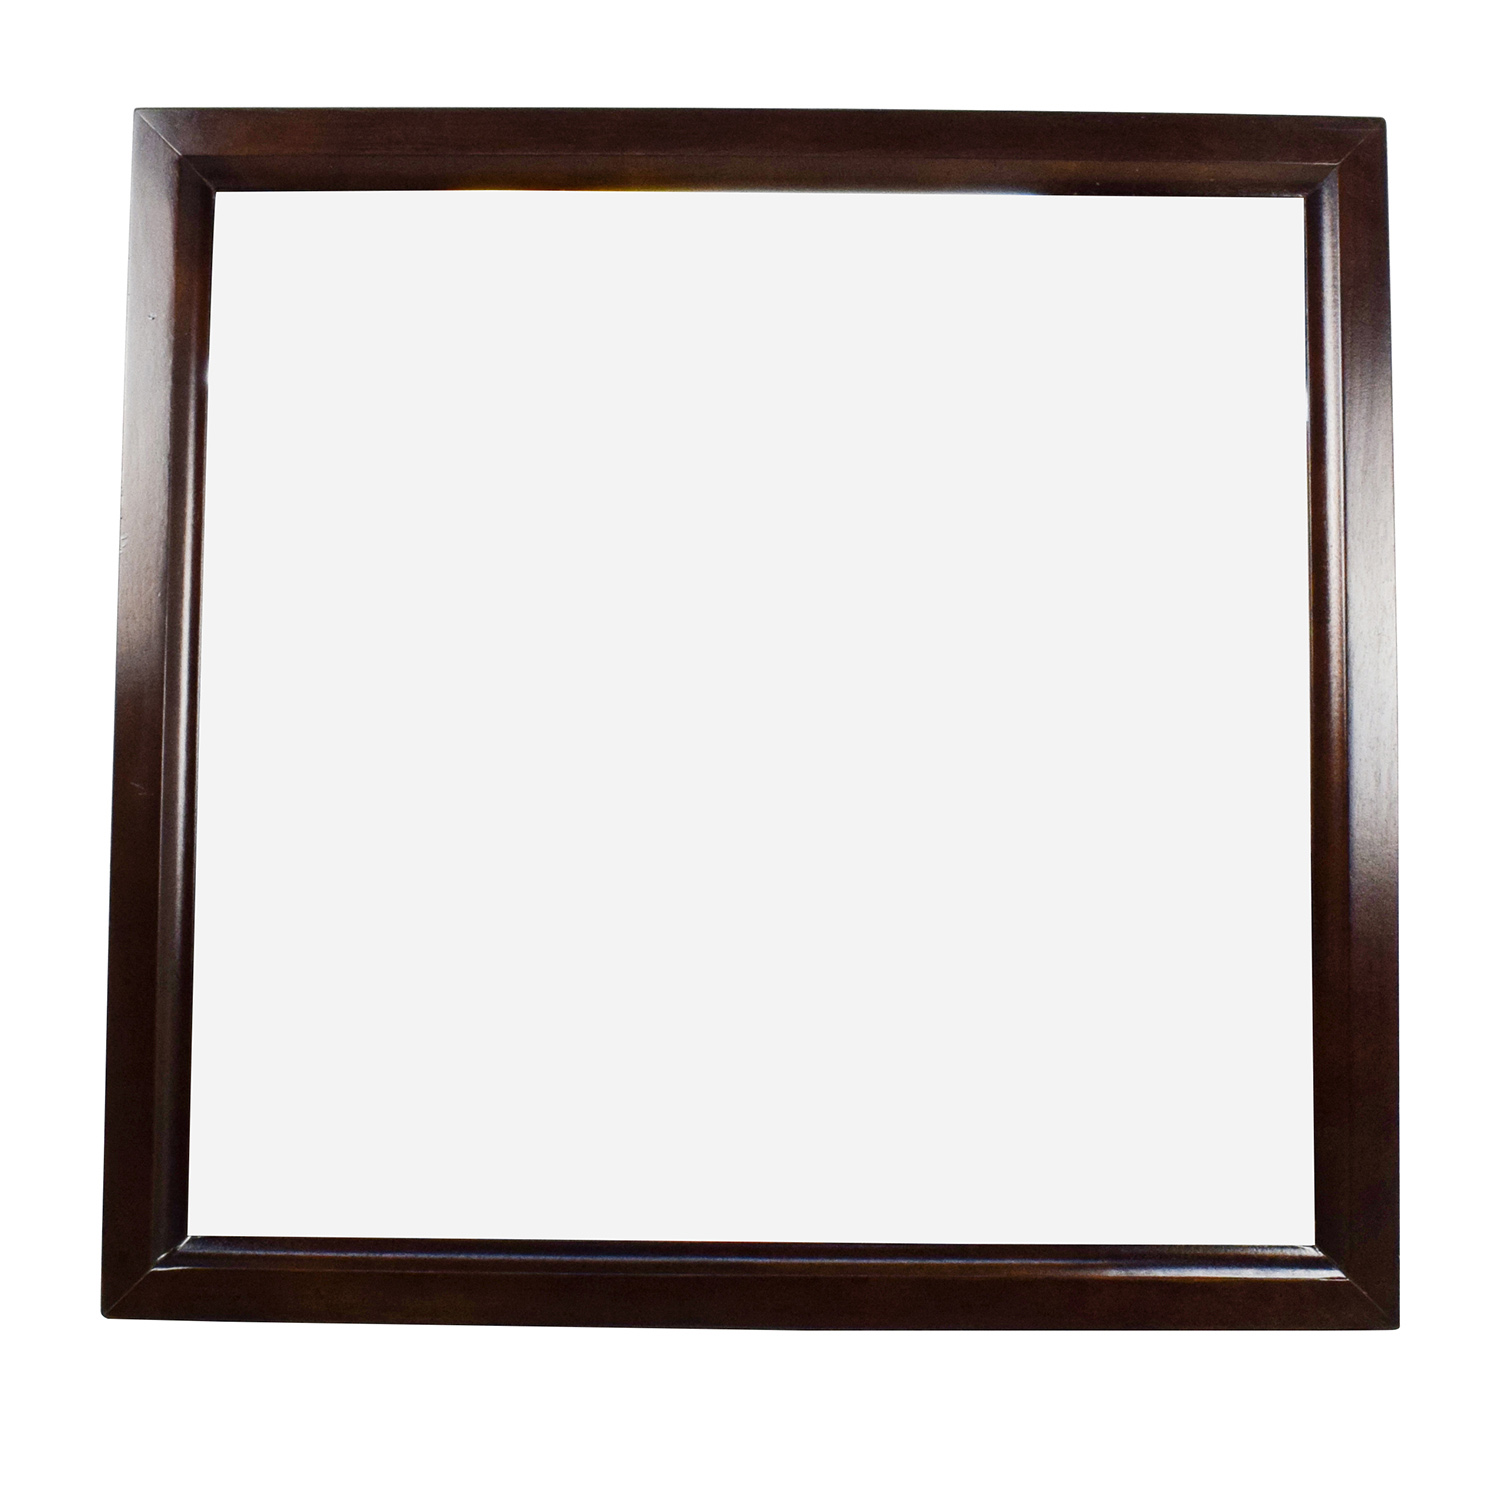 Raymour and Flanigan Raymour & Flanigan Poseidon Mirror dimensions